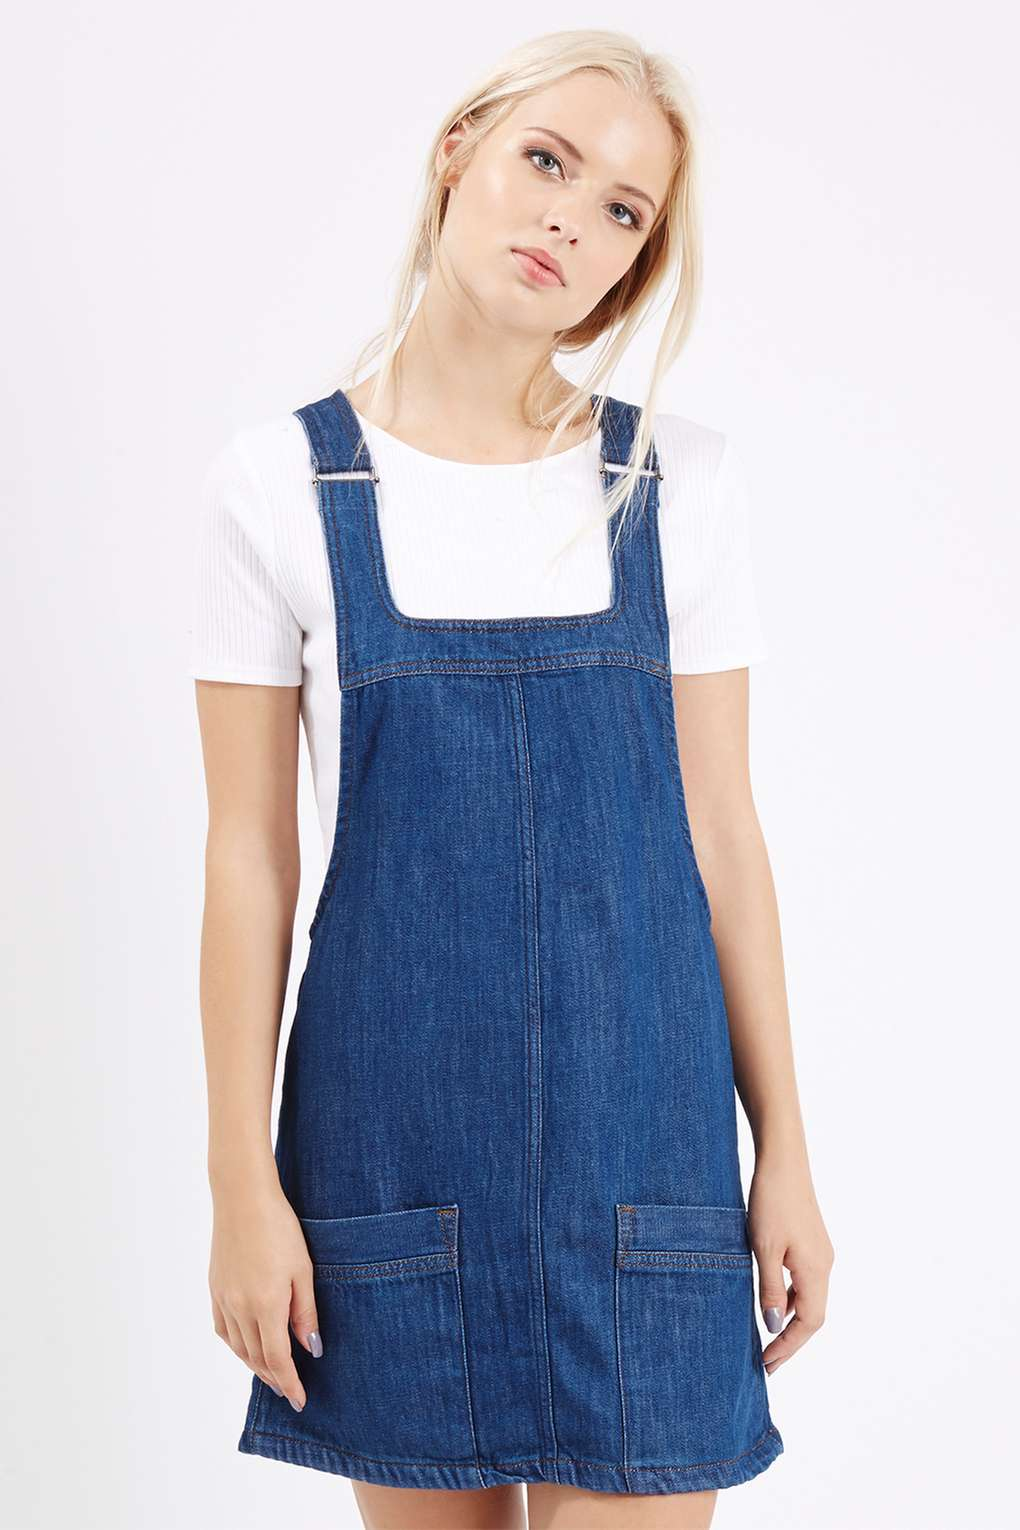 How to Wear A Denim Pinafore Dress